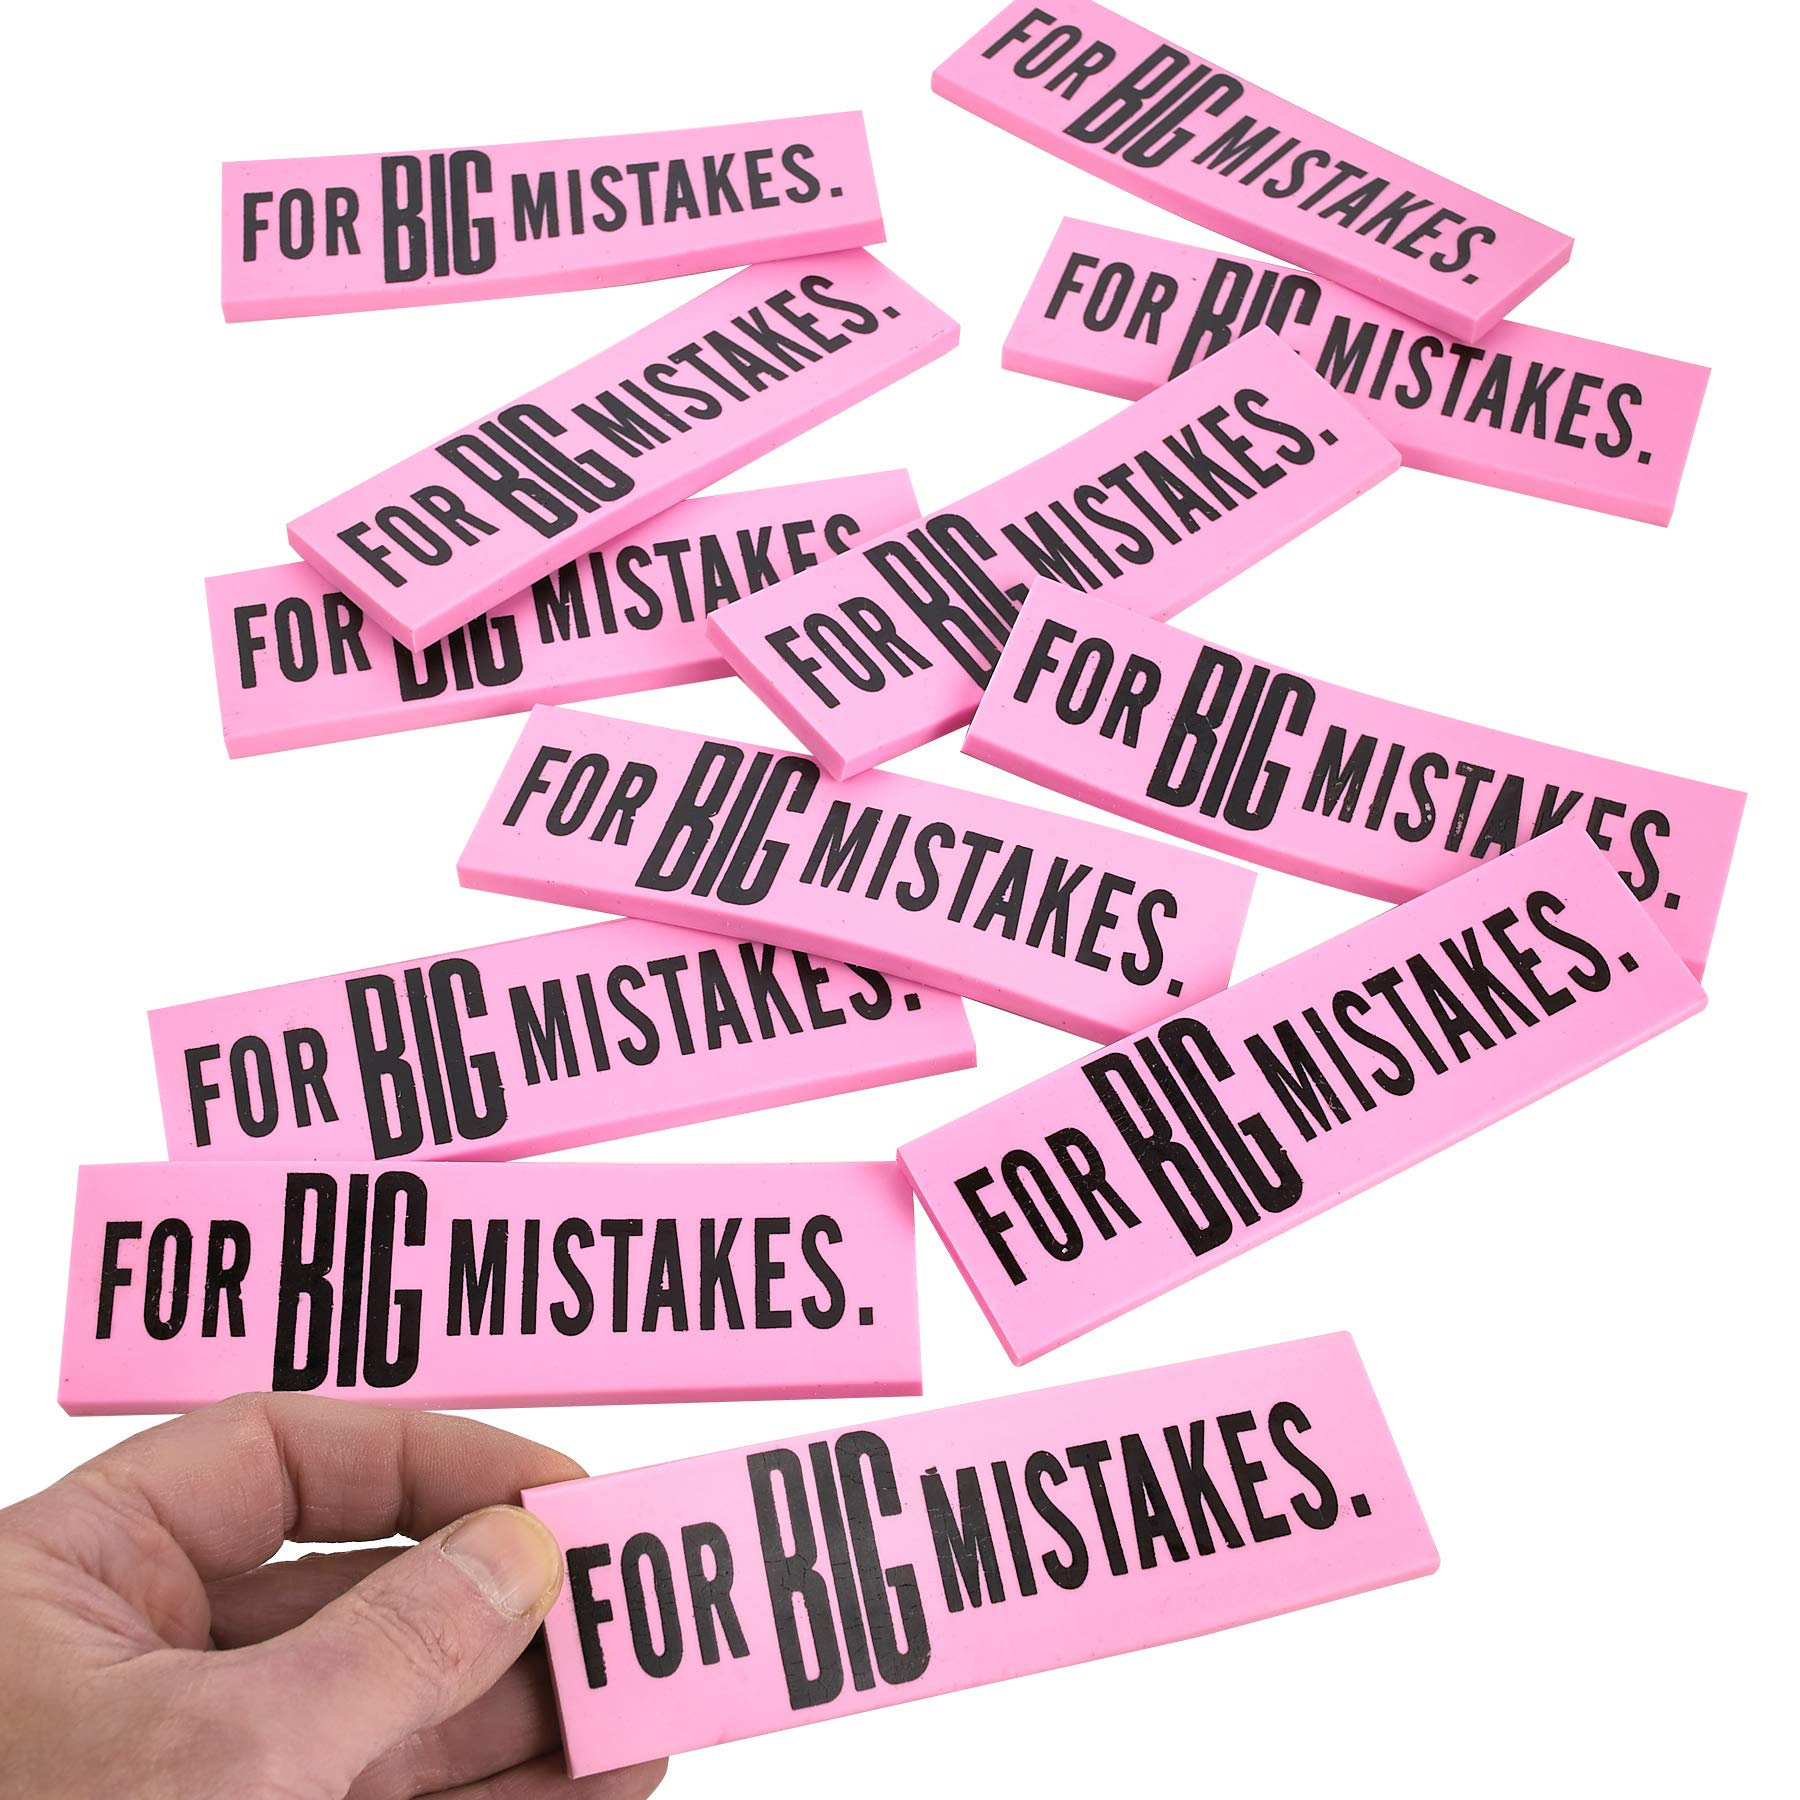 Kicko Big Mistake Eraser - 12 Pack Jumbo Eraser - 5.5 x 1.5 Inches - Pencil Eraser School Supplies for Kids - Children on Preschool, Elementary and Middle School by Kicko (Image #3)